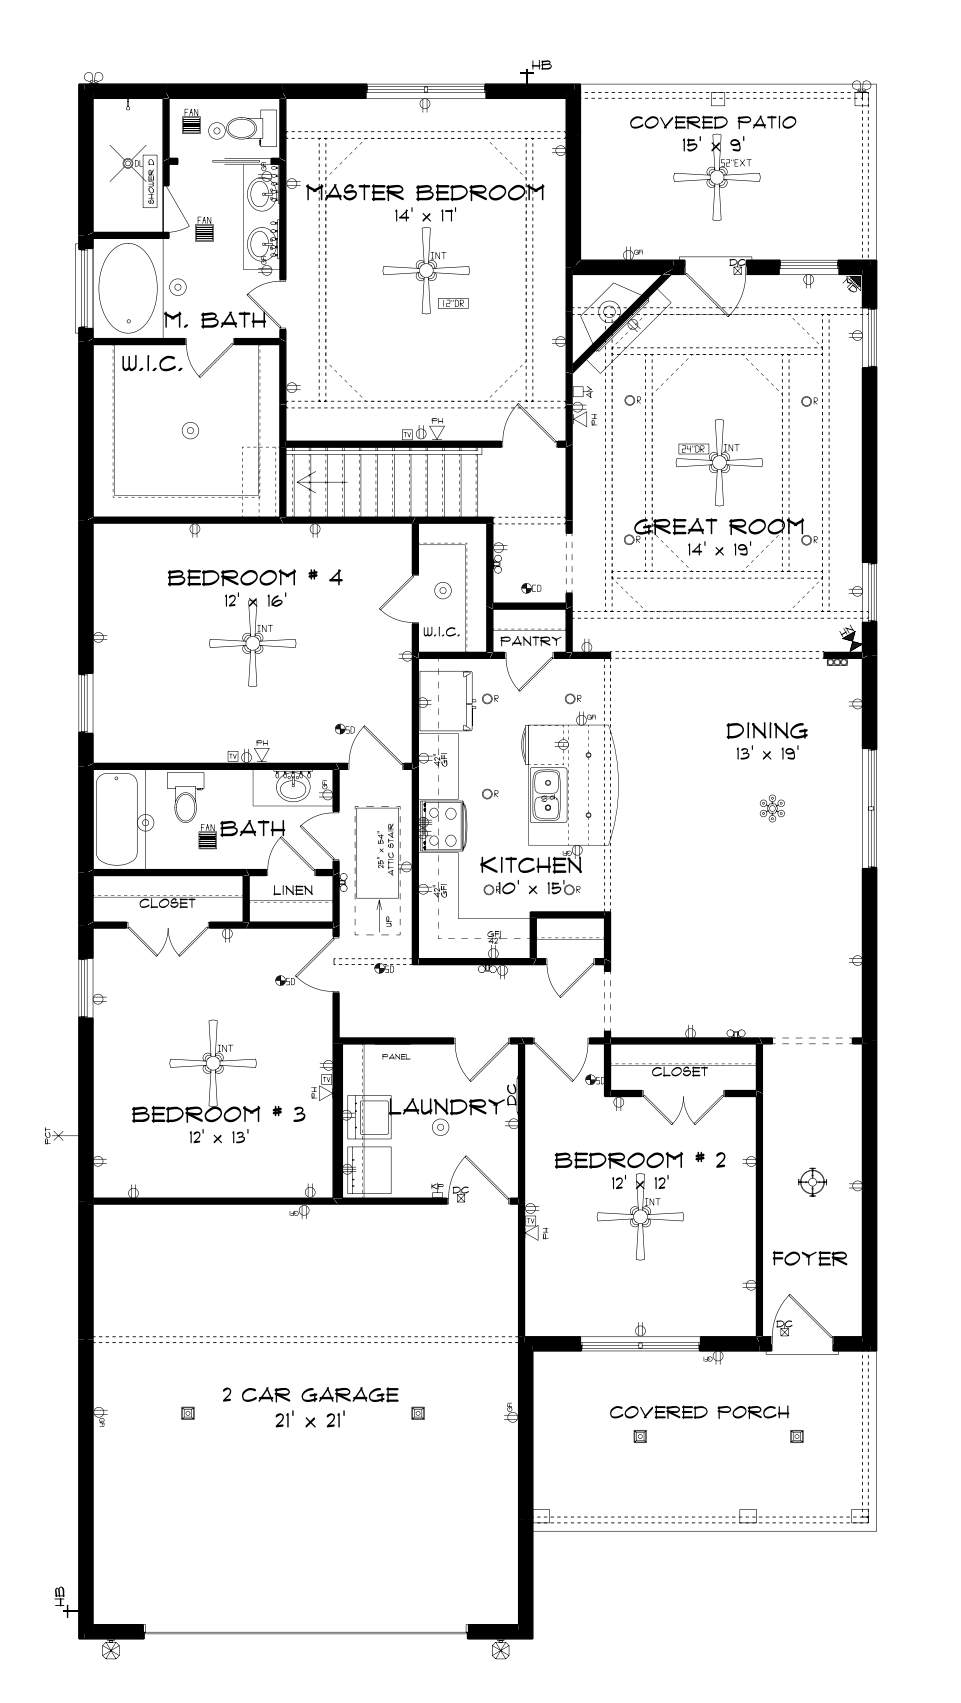 Attic drawing layout. Savannah main floor by